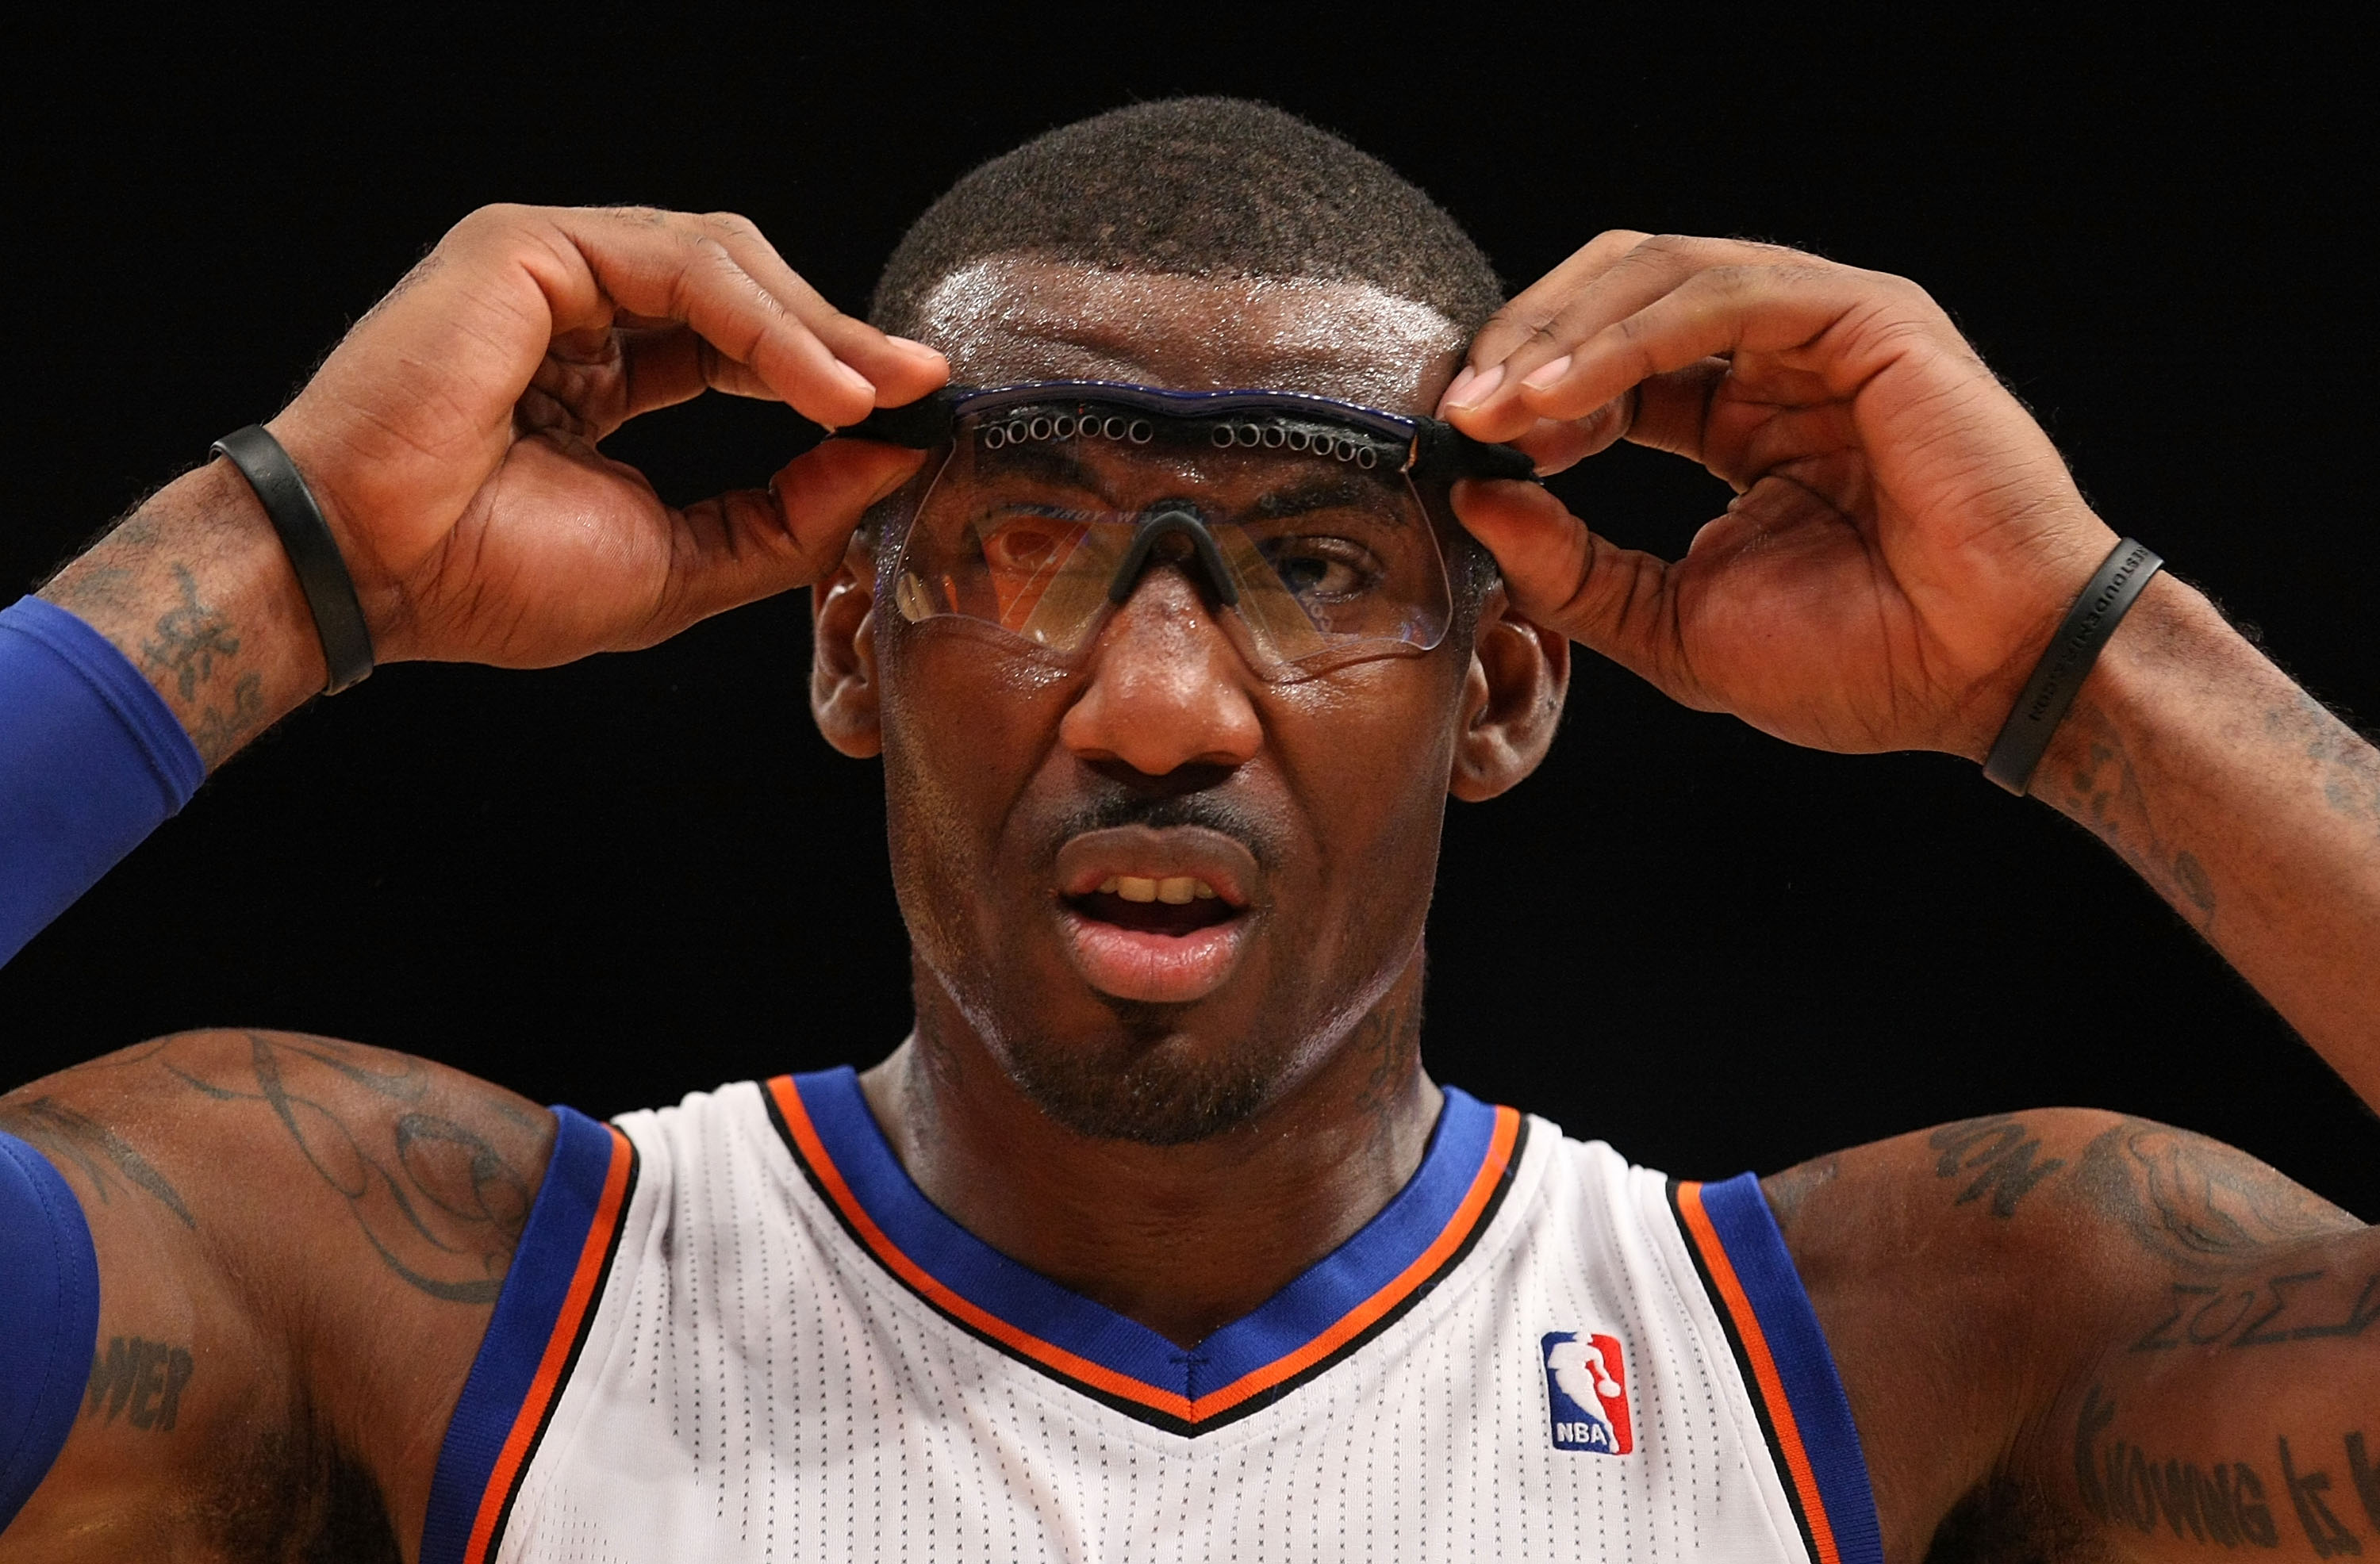 NEW YORK, NY - DECEMBER 17:  Amar'e Stoudemire #1 of the New York Knicks adjusts his goggles against  the Miami Heat at Madison Square Garden on December 17, 2010 in New York City. NOTE TO USER: User expressly acknowledges and agrees that, by downloading